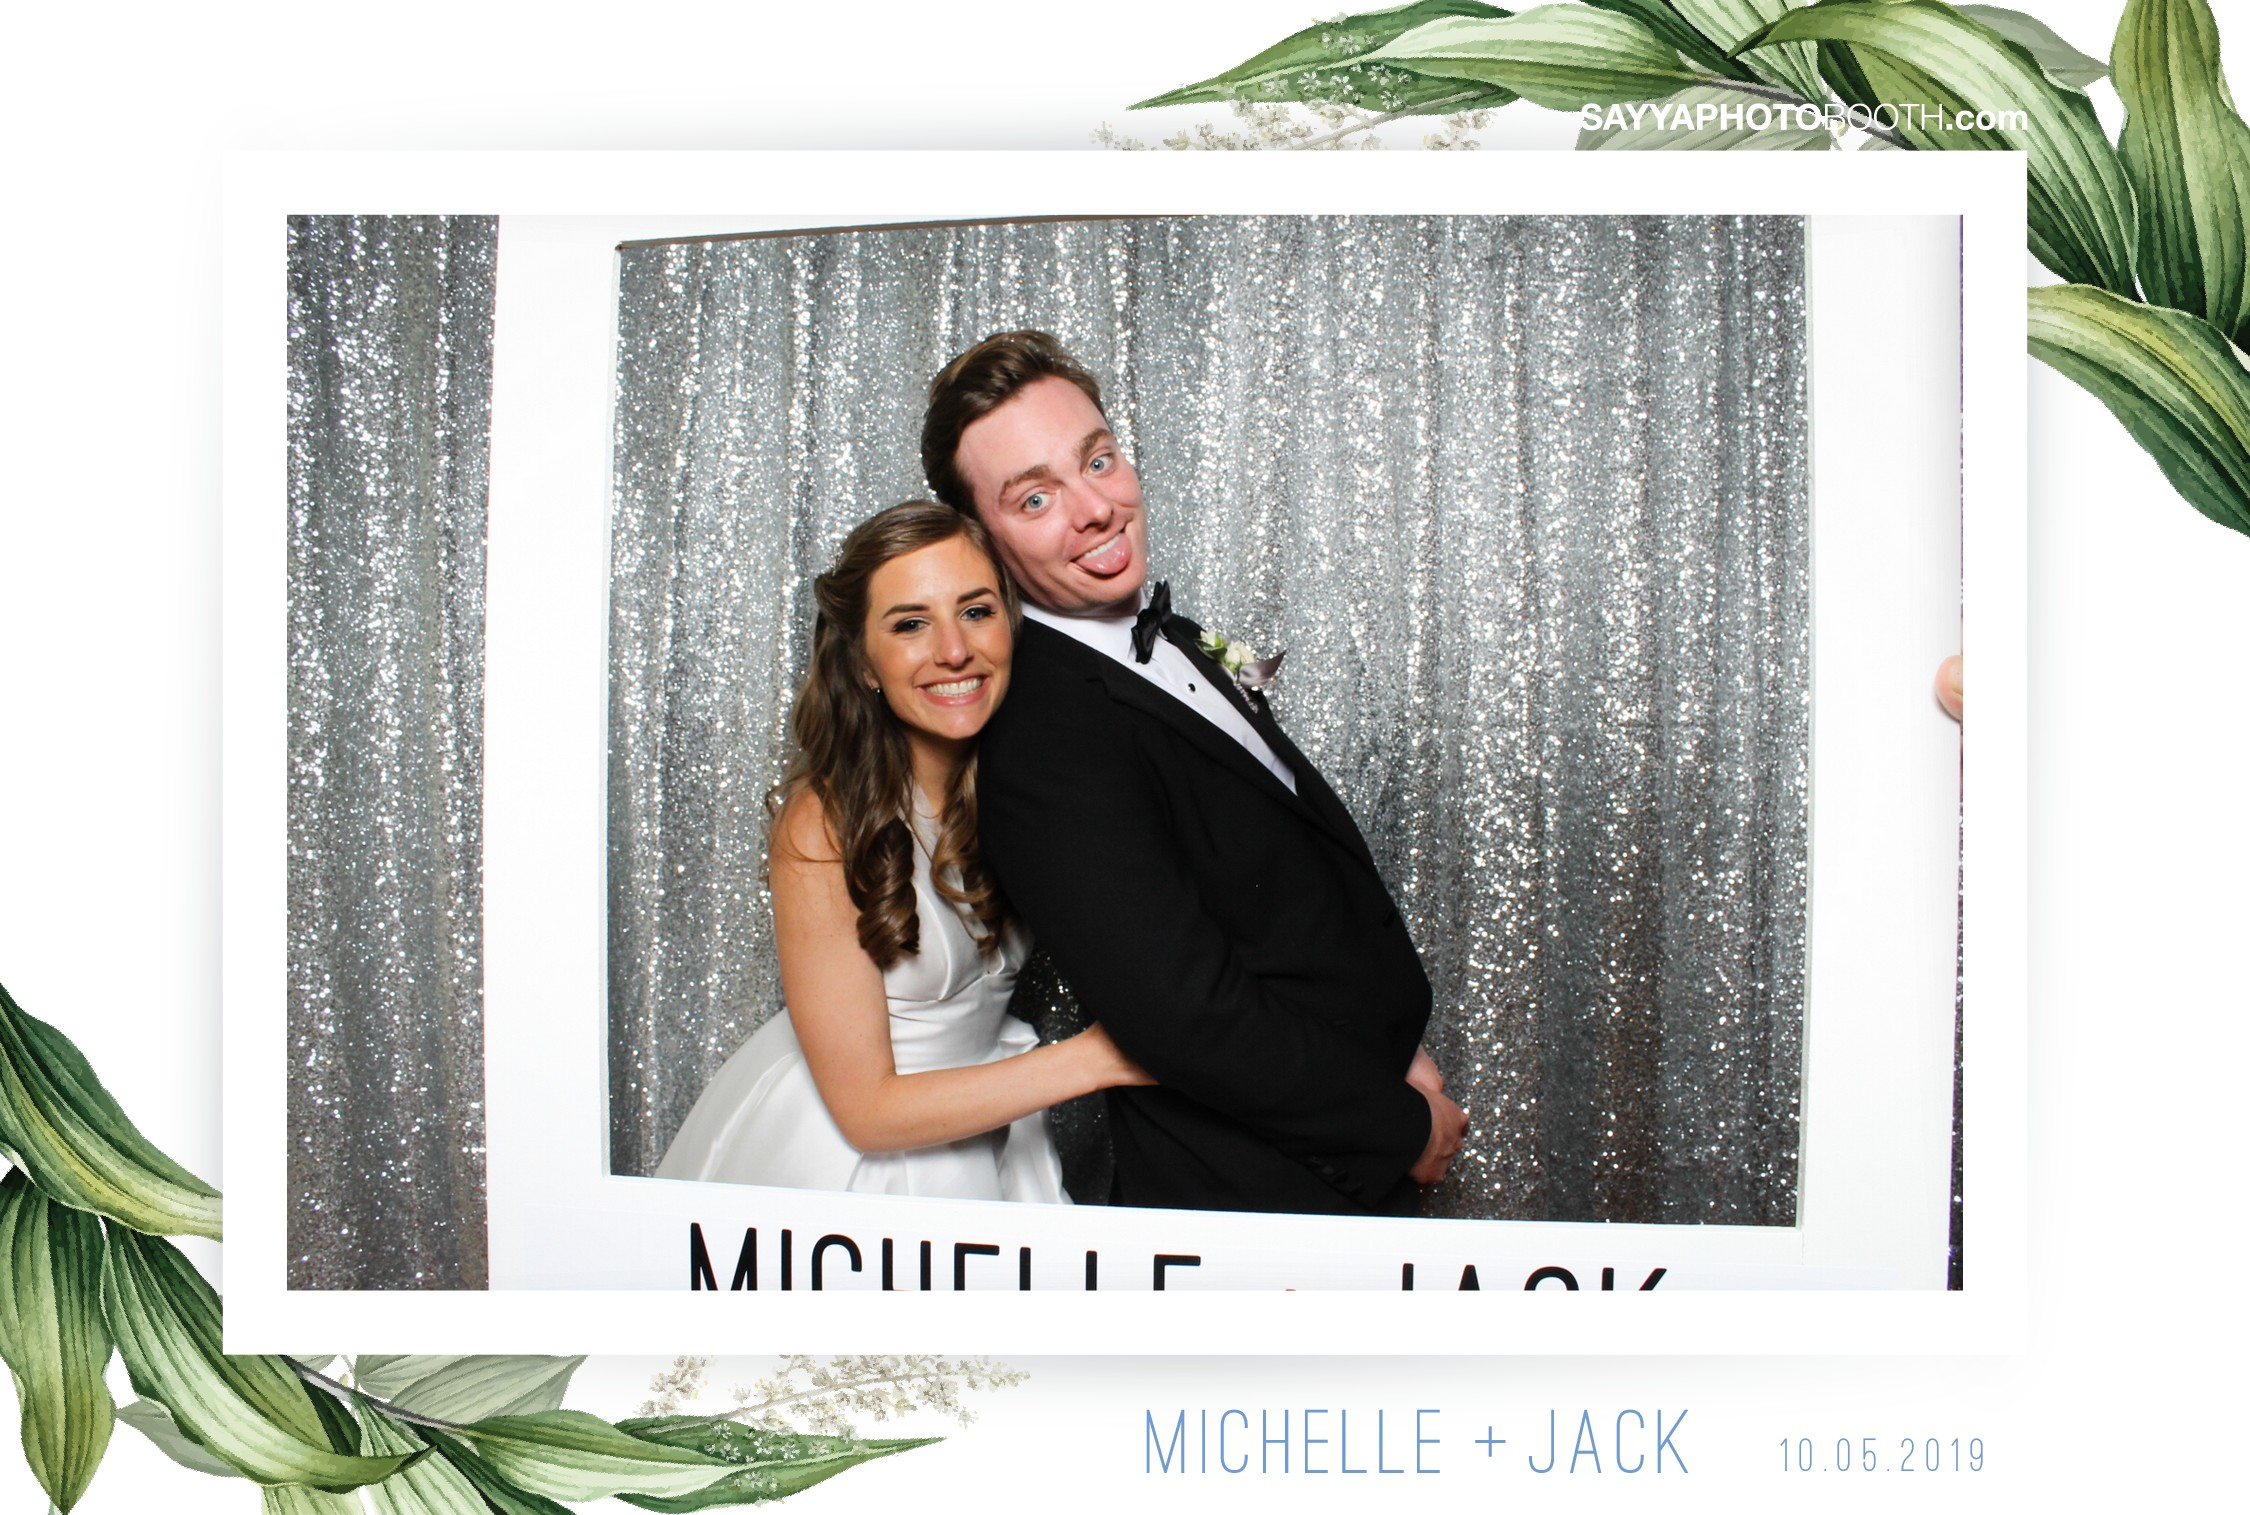 Michelle & Jack's Wedding